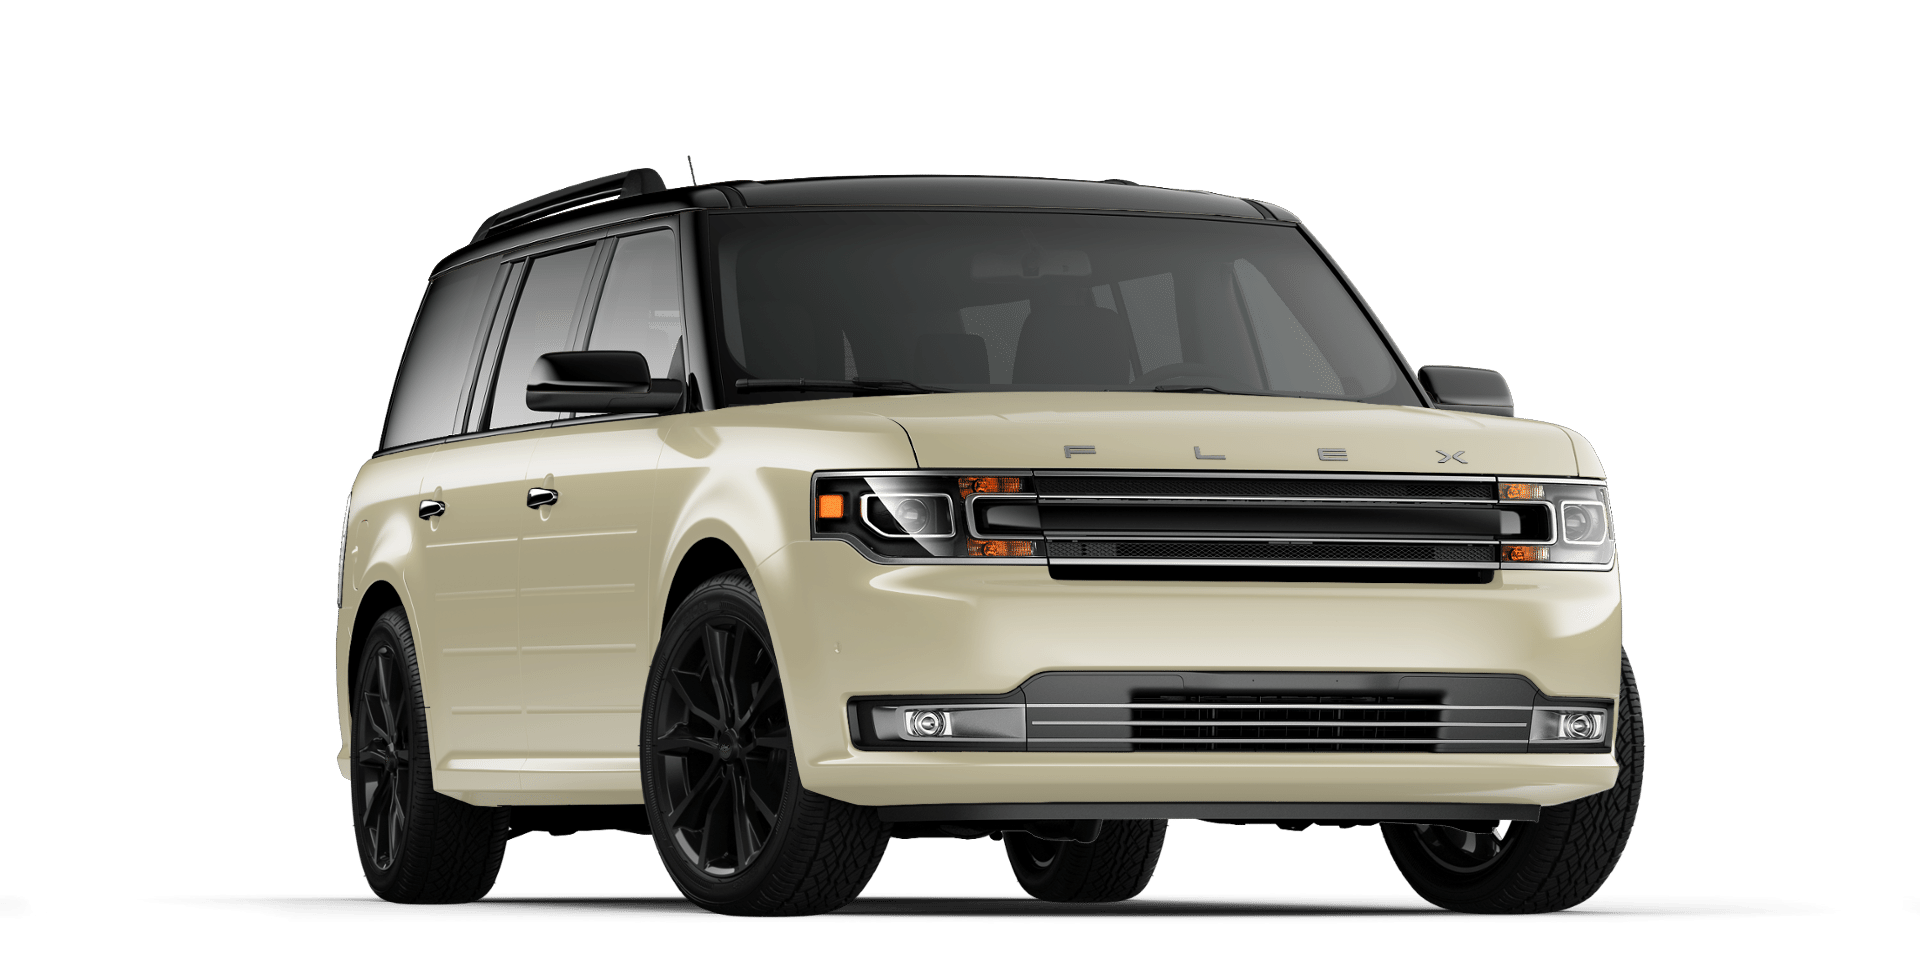 2017 Ford Flex Build Price Ford Flex Ford Motor Company